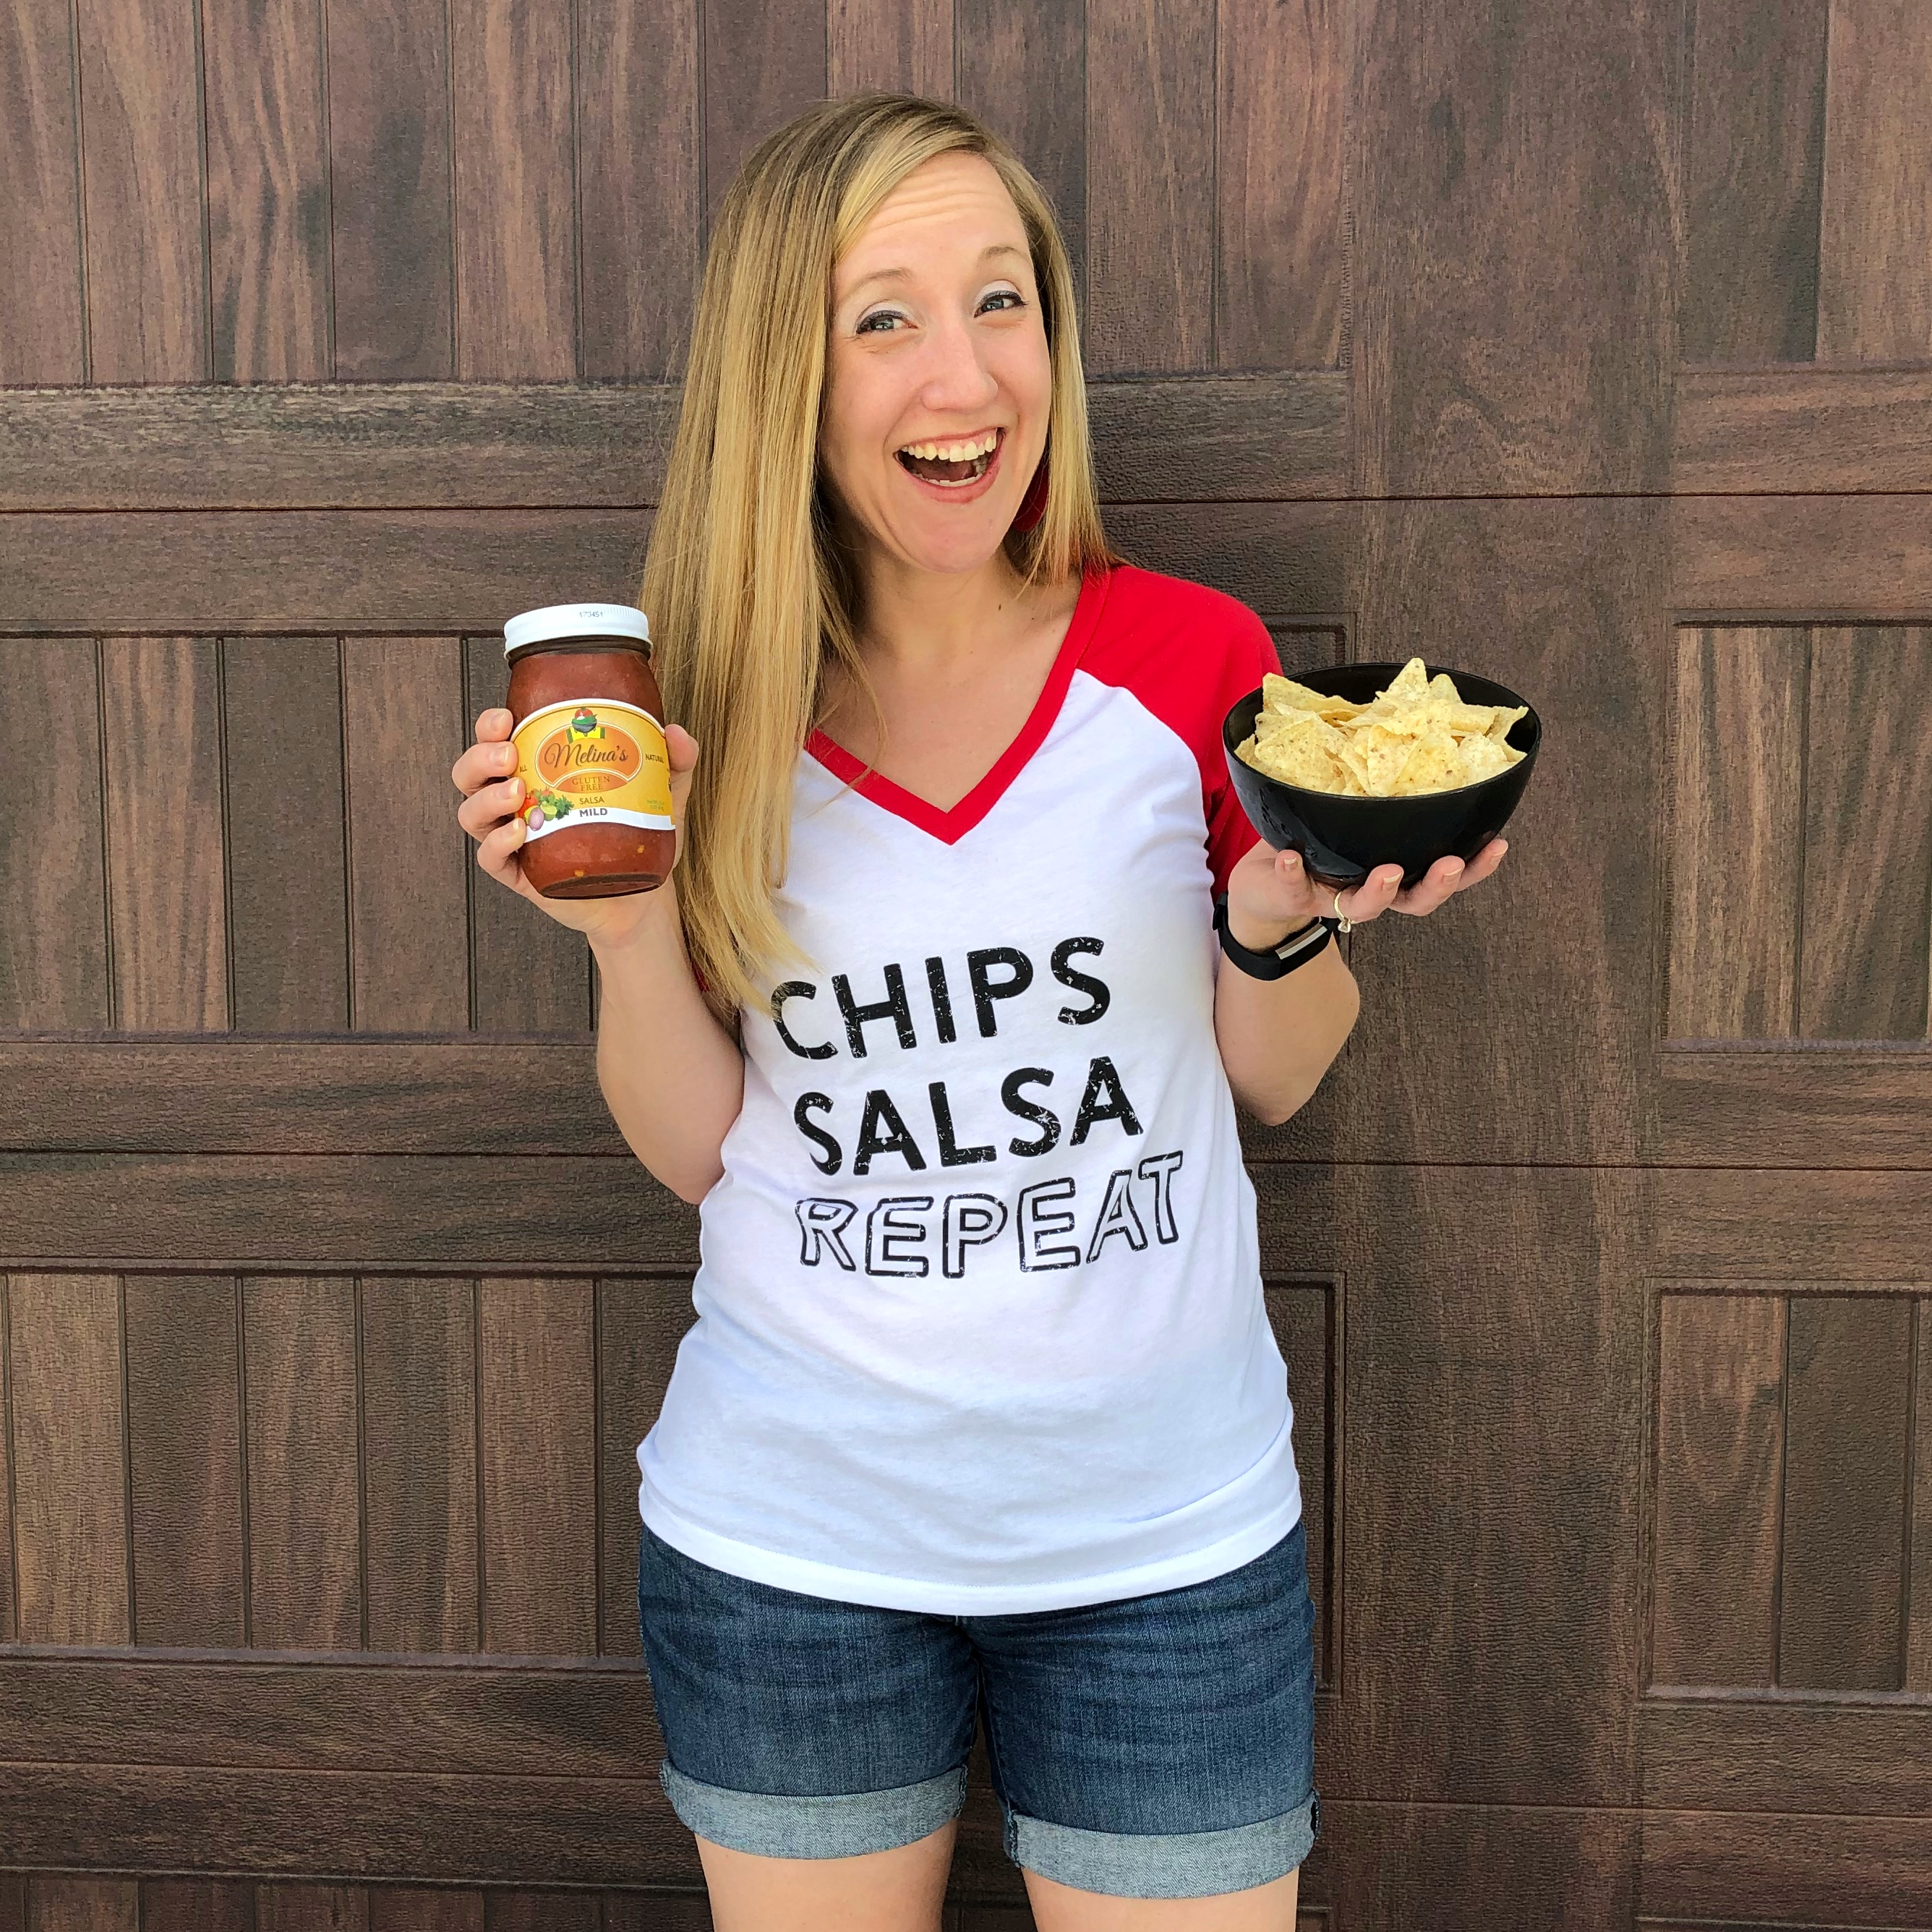 Chips. Salsa. Repeat.